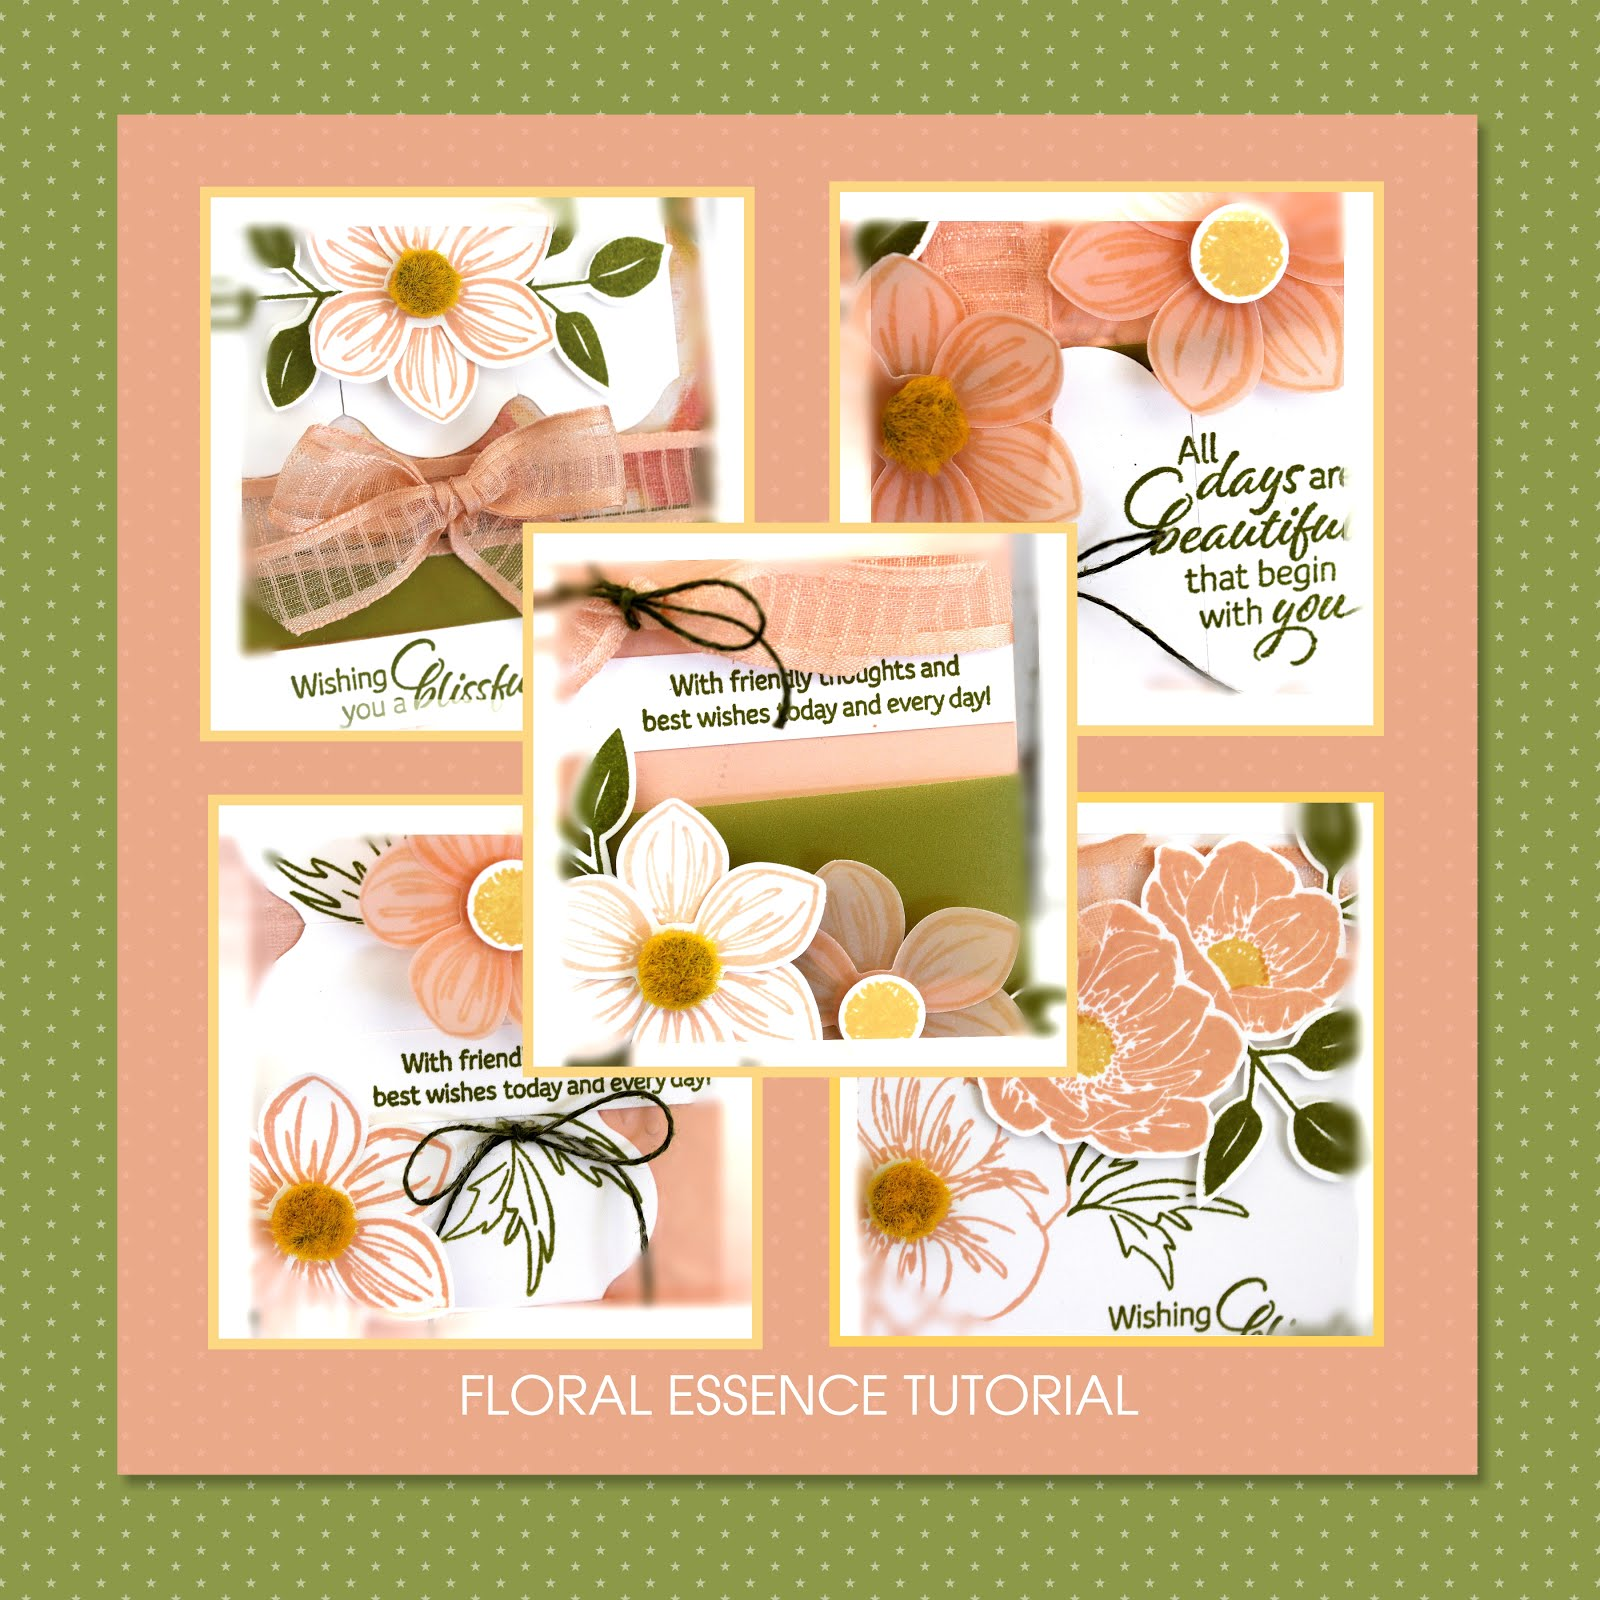 May 2019 Floral Essence Tutorial